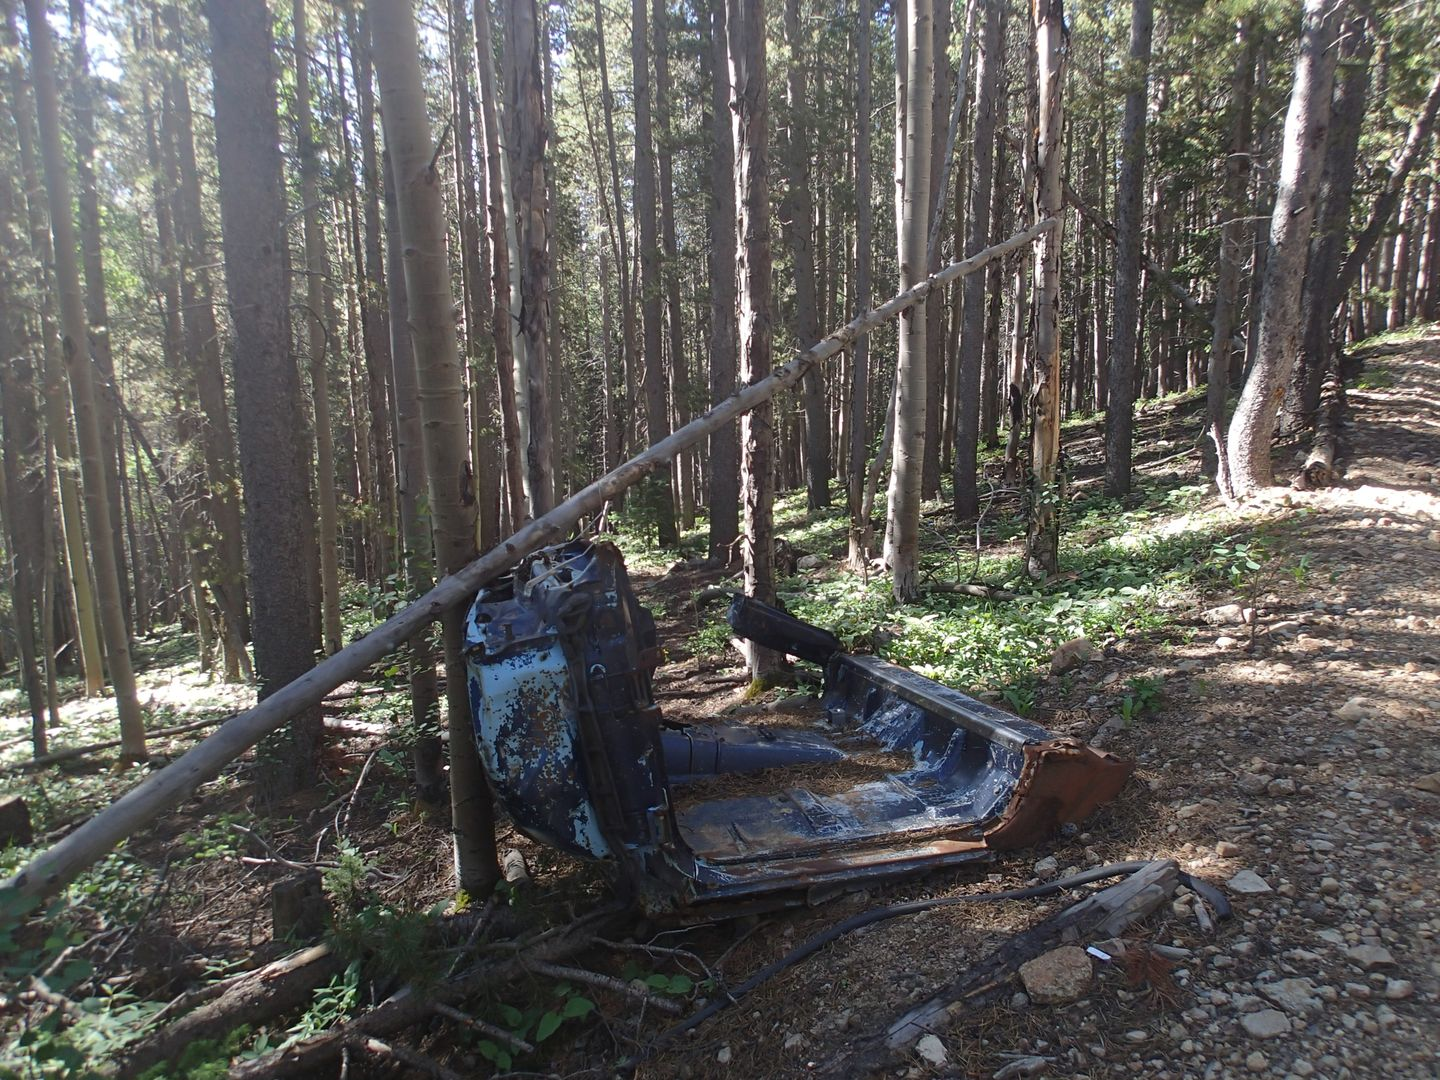 Miller Creek - Waypoint 2: Wreckage